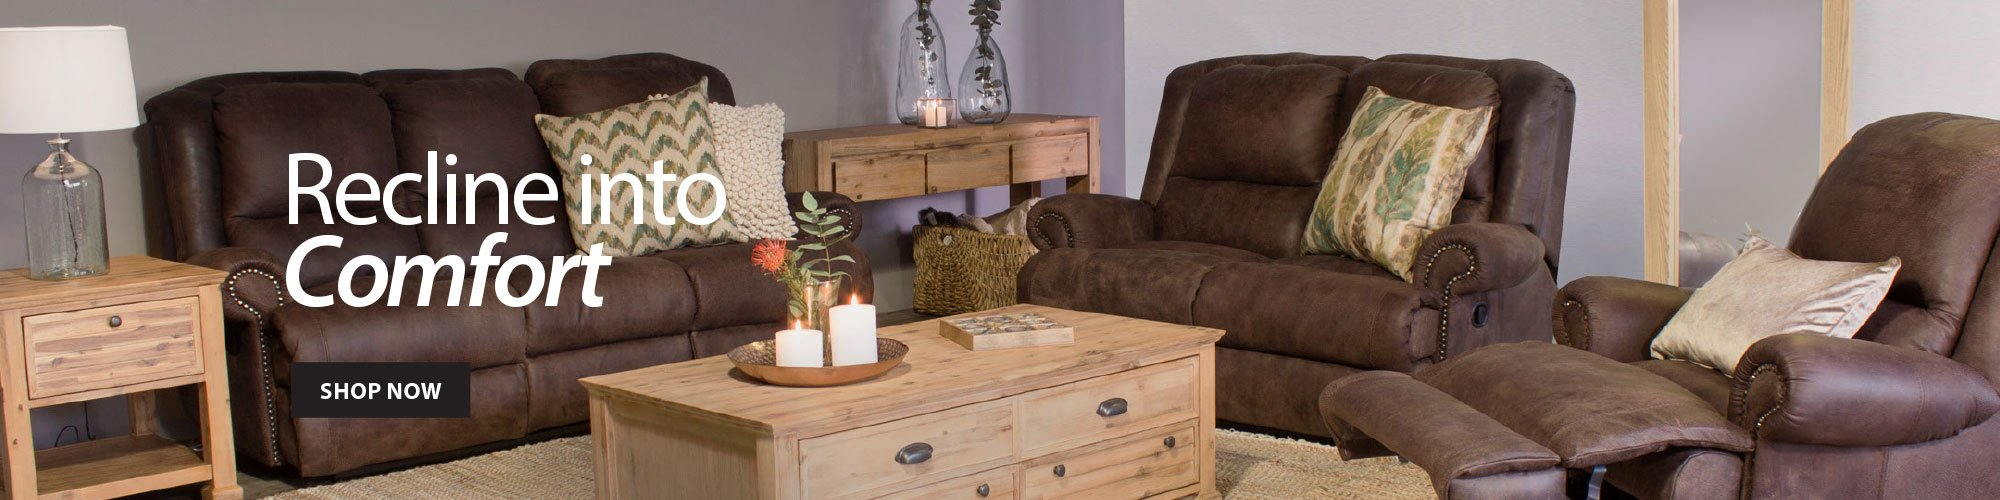 coricraft furniture store and manufacturer | shop for couches